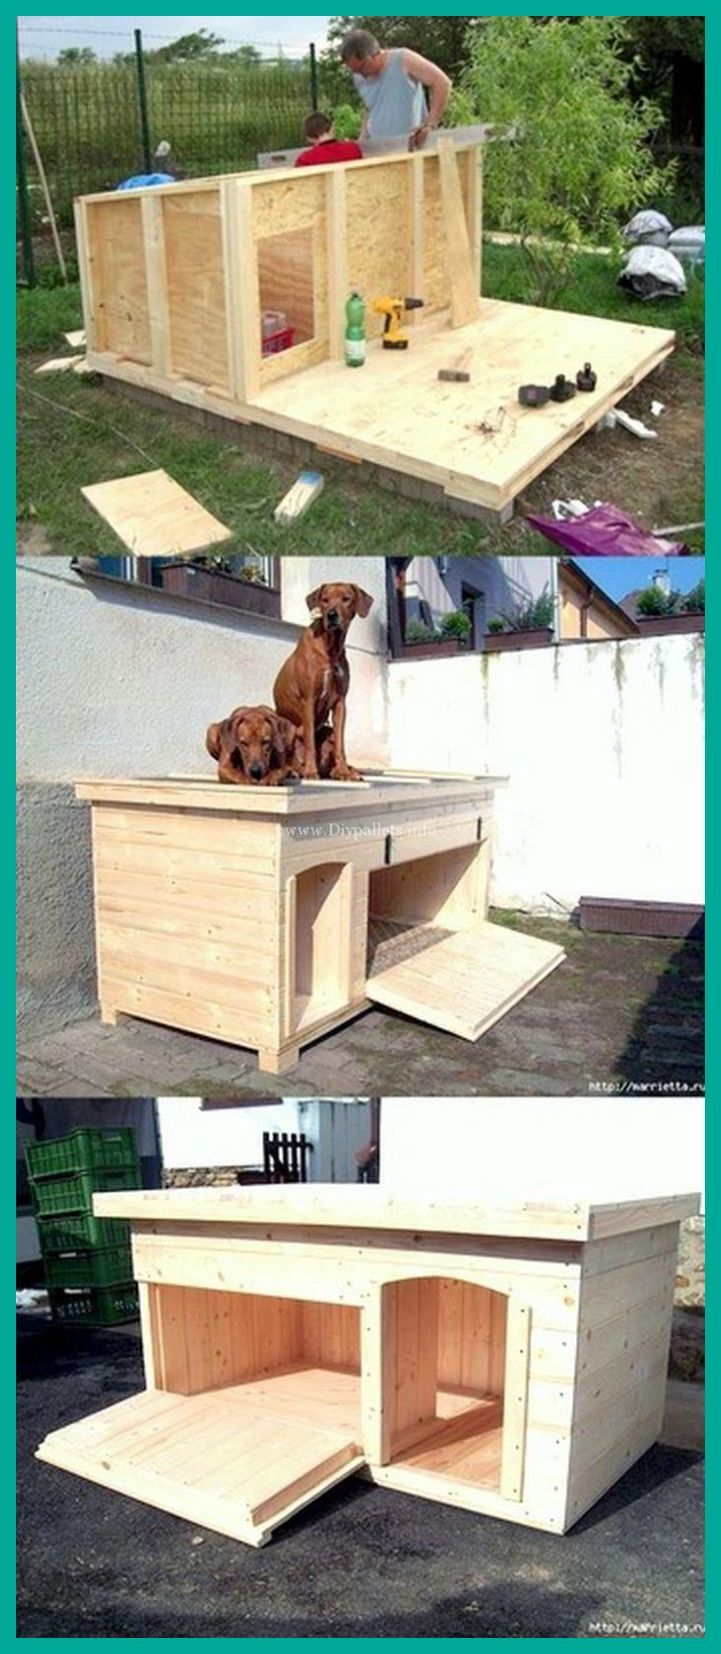 Wooden Dog Kennel Furniture Built By You Diy Dog House Insulated Big Dog House Plans Di Diy Dog Kennel Pallet Dog House Dog House Diy